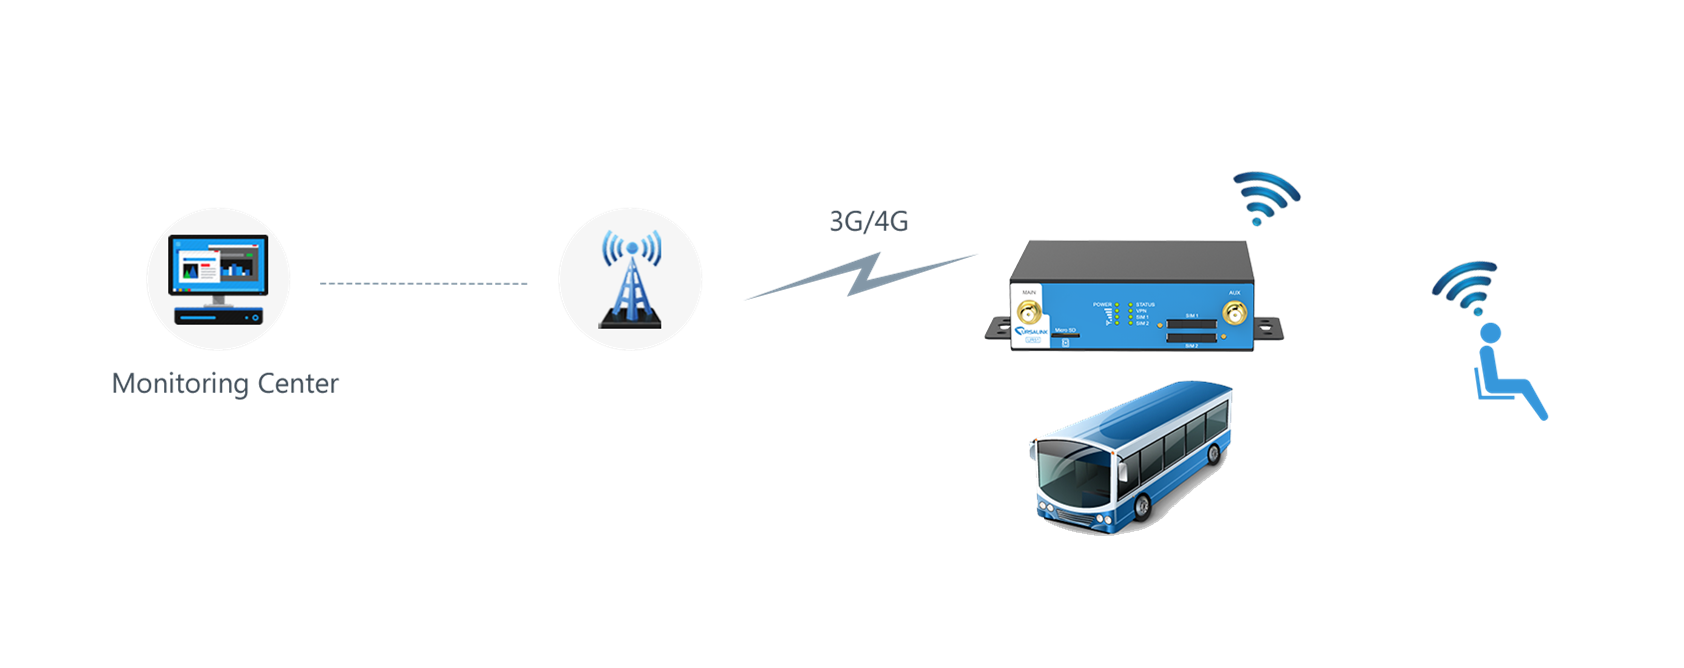 ursalink_intelligent_public_transportation_system_topology